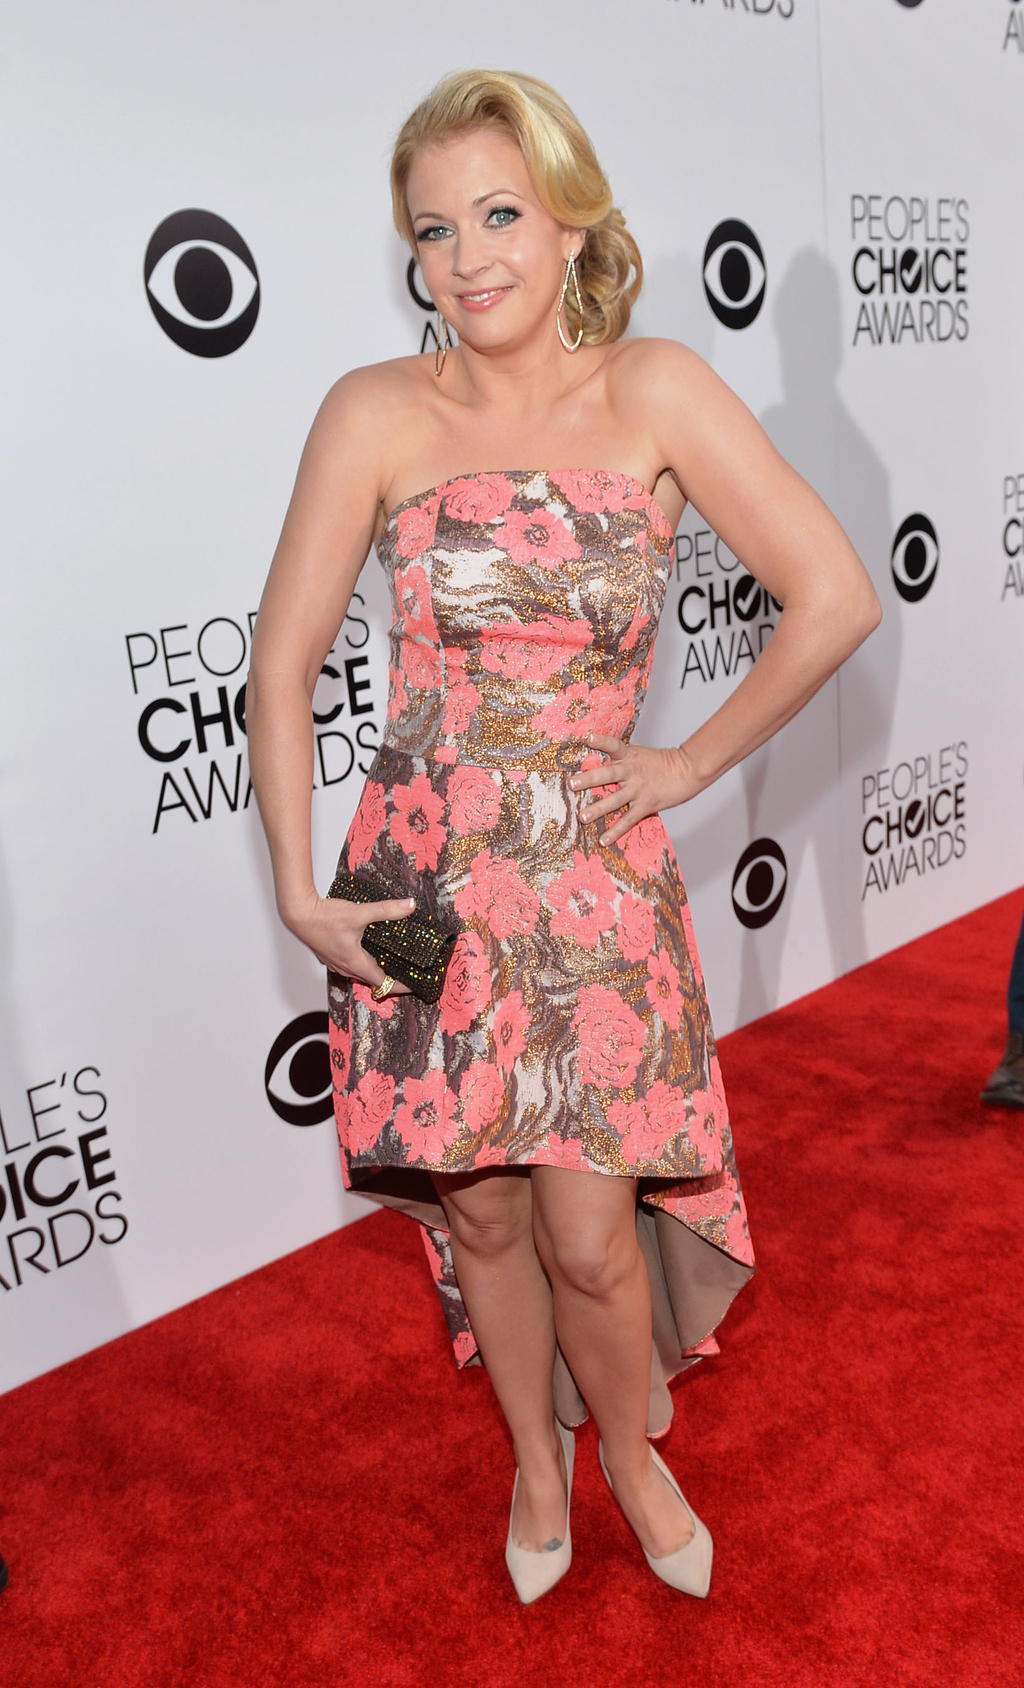 Fashion At The 2014 People's Choice Awards